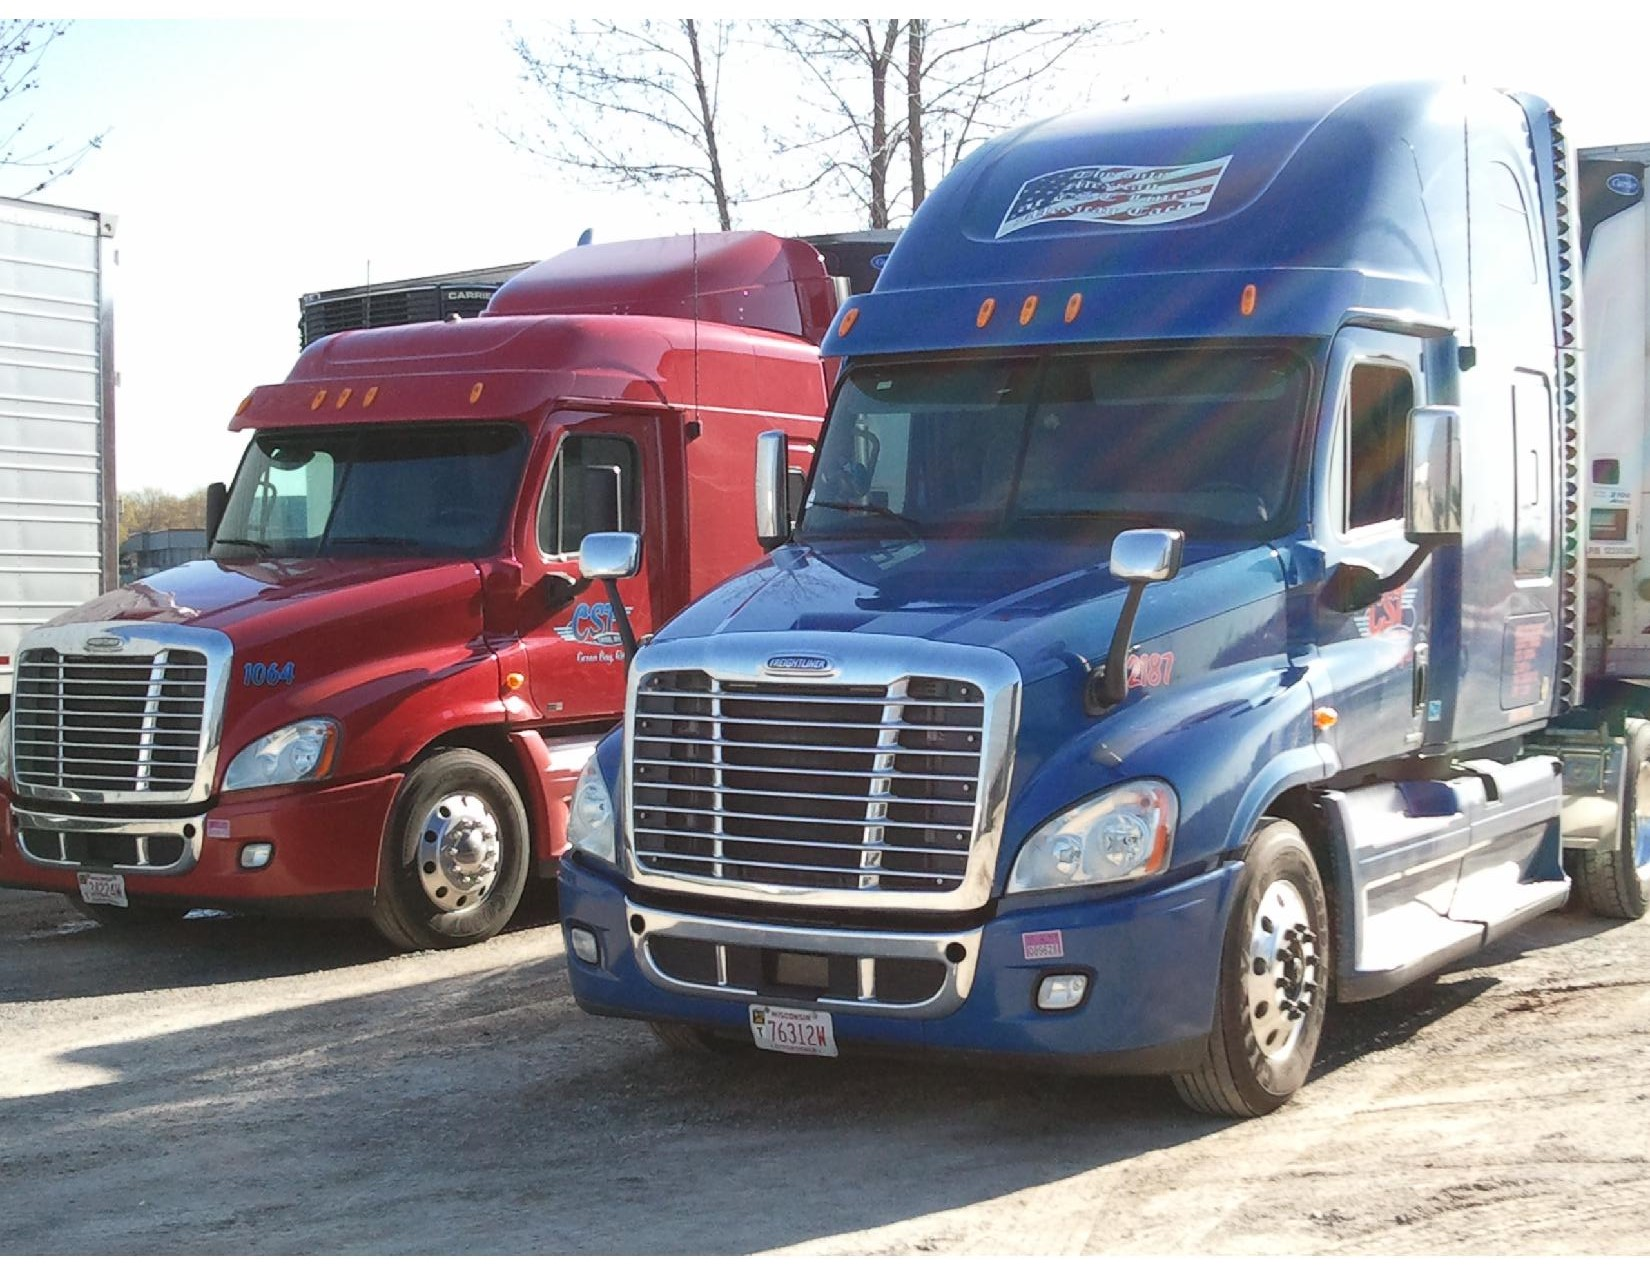 Four Trucking Company Trucks - CST Lines, Inc, Green Bay, WI